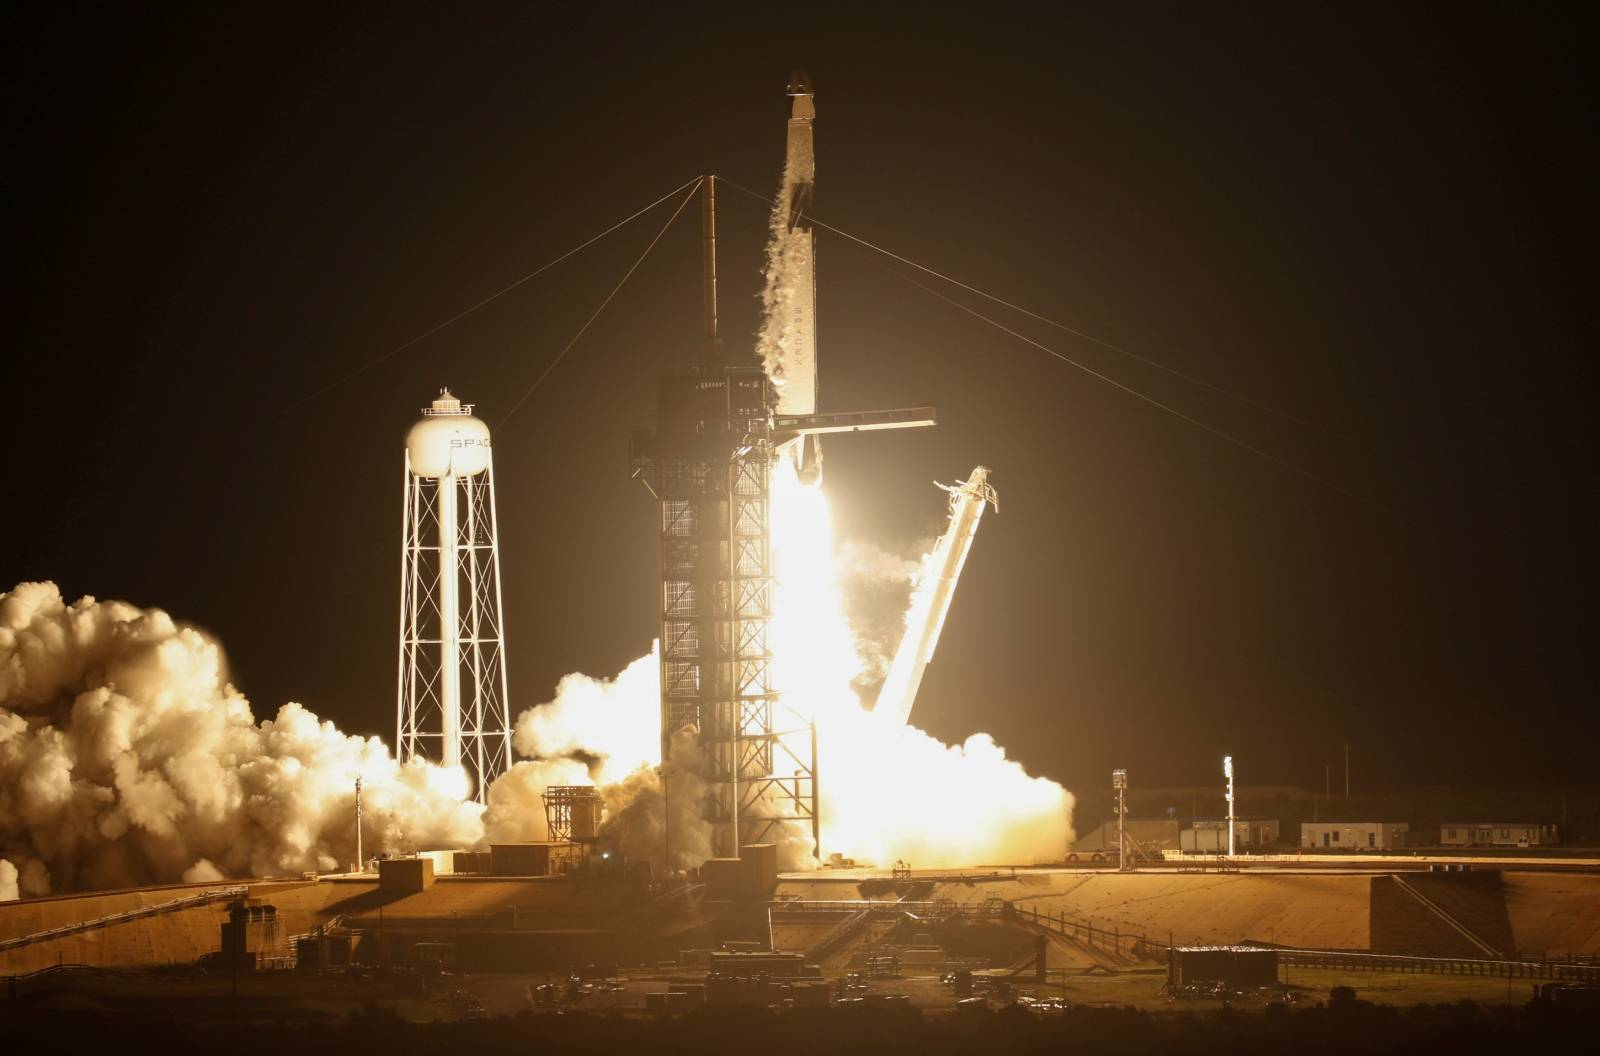 SpaceX Falcon 9 rocket lifts off to ISS from Kennedy Space Center